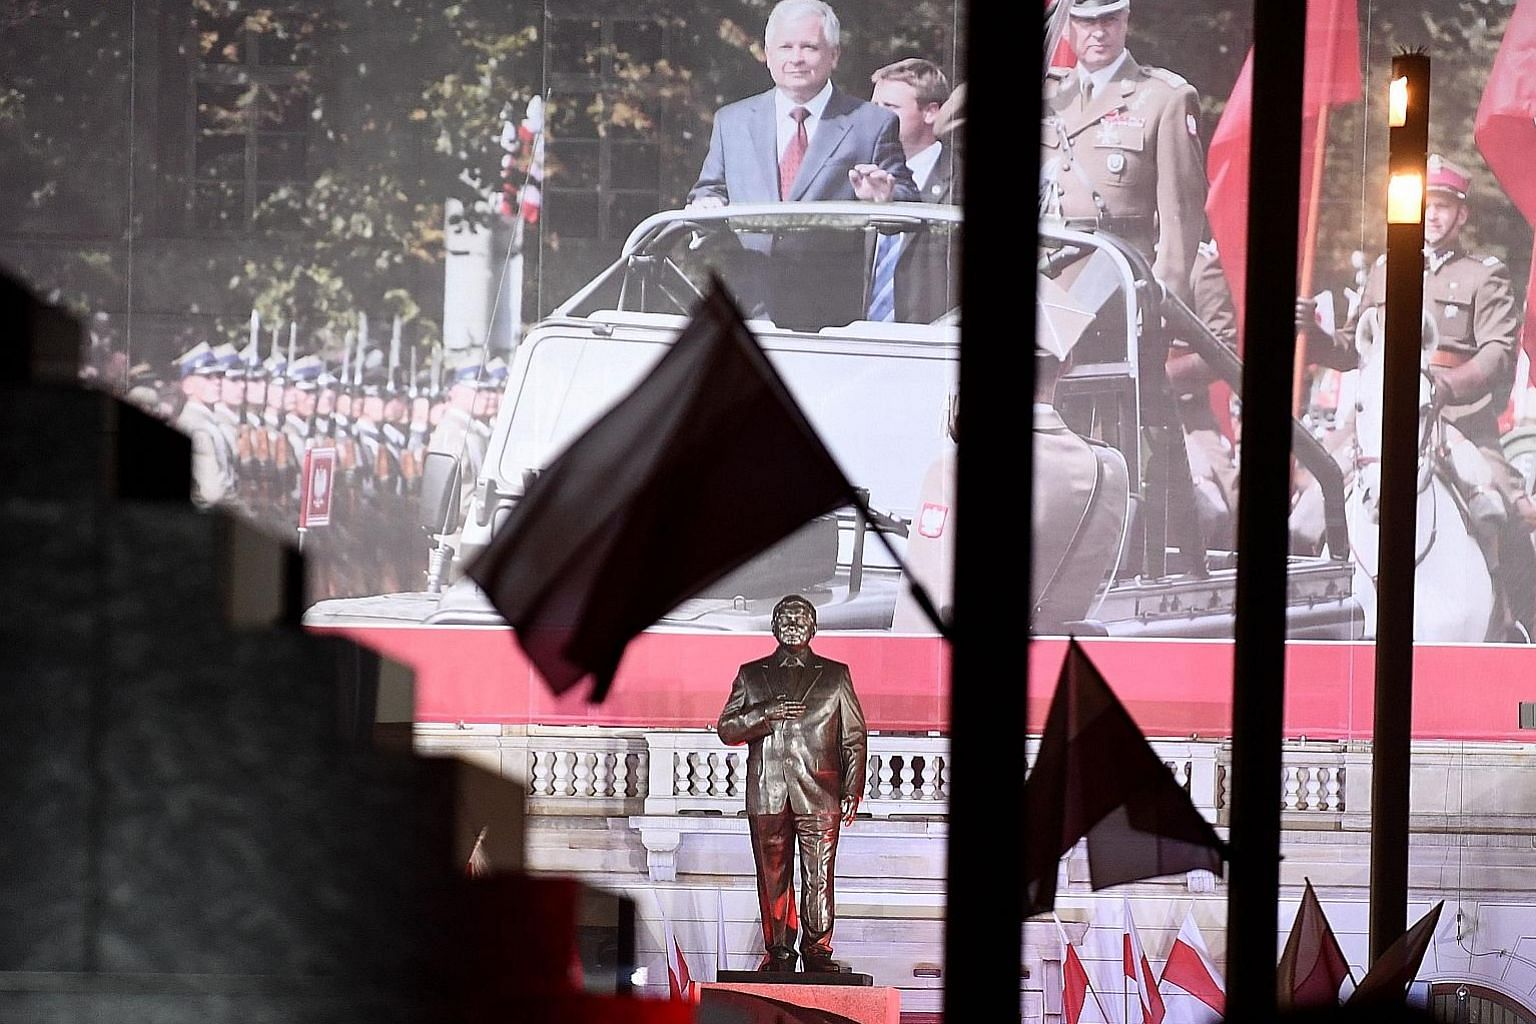 Mr Jaroslaw Kaczynski (centre, on screen), chairman of Poland's ruling Law and Justice party, at a ceremony to unveil a monument of his twin brother, the late Polish president Lech Kaczynski, last Saturday.